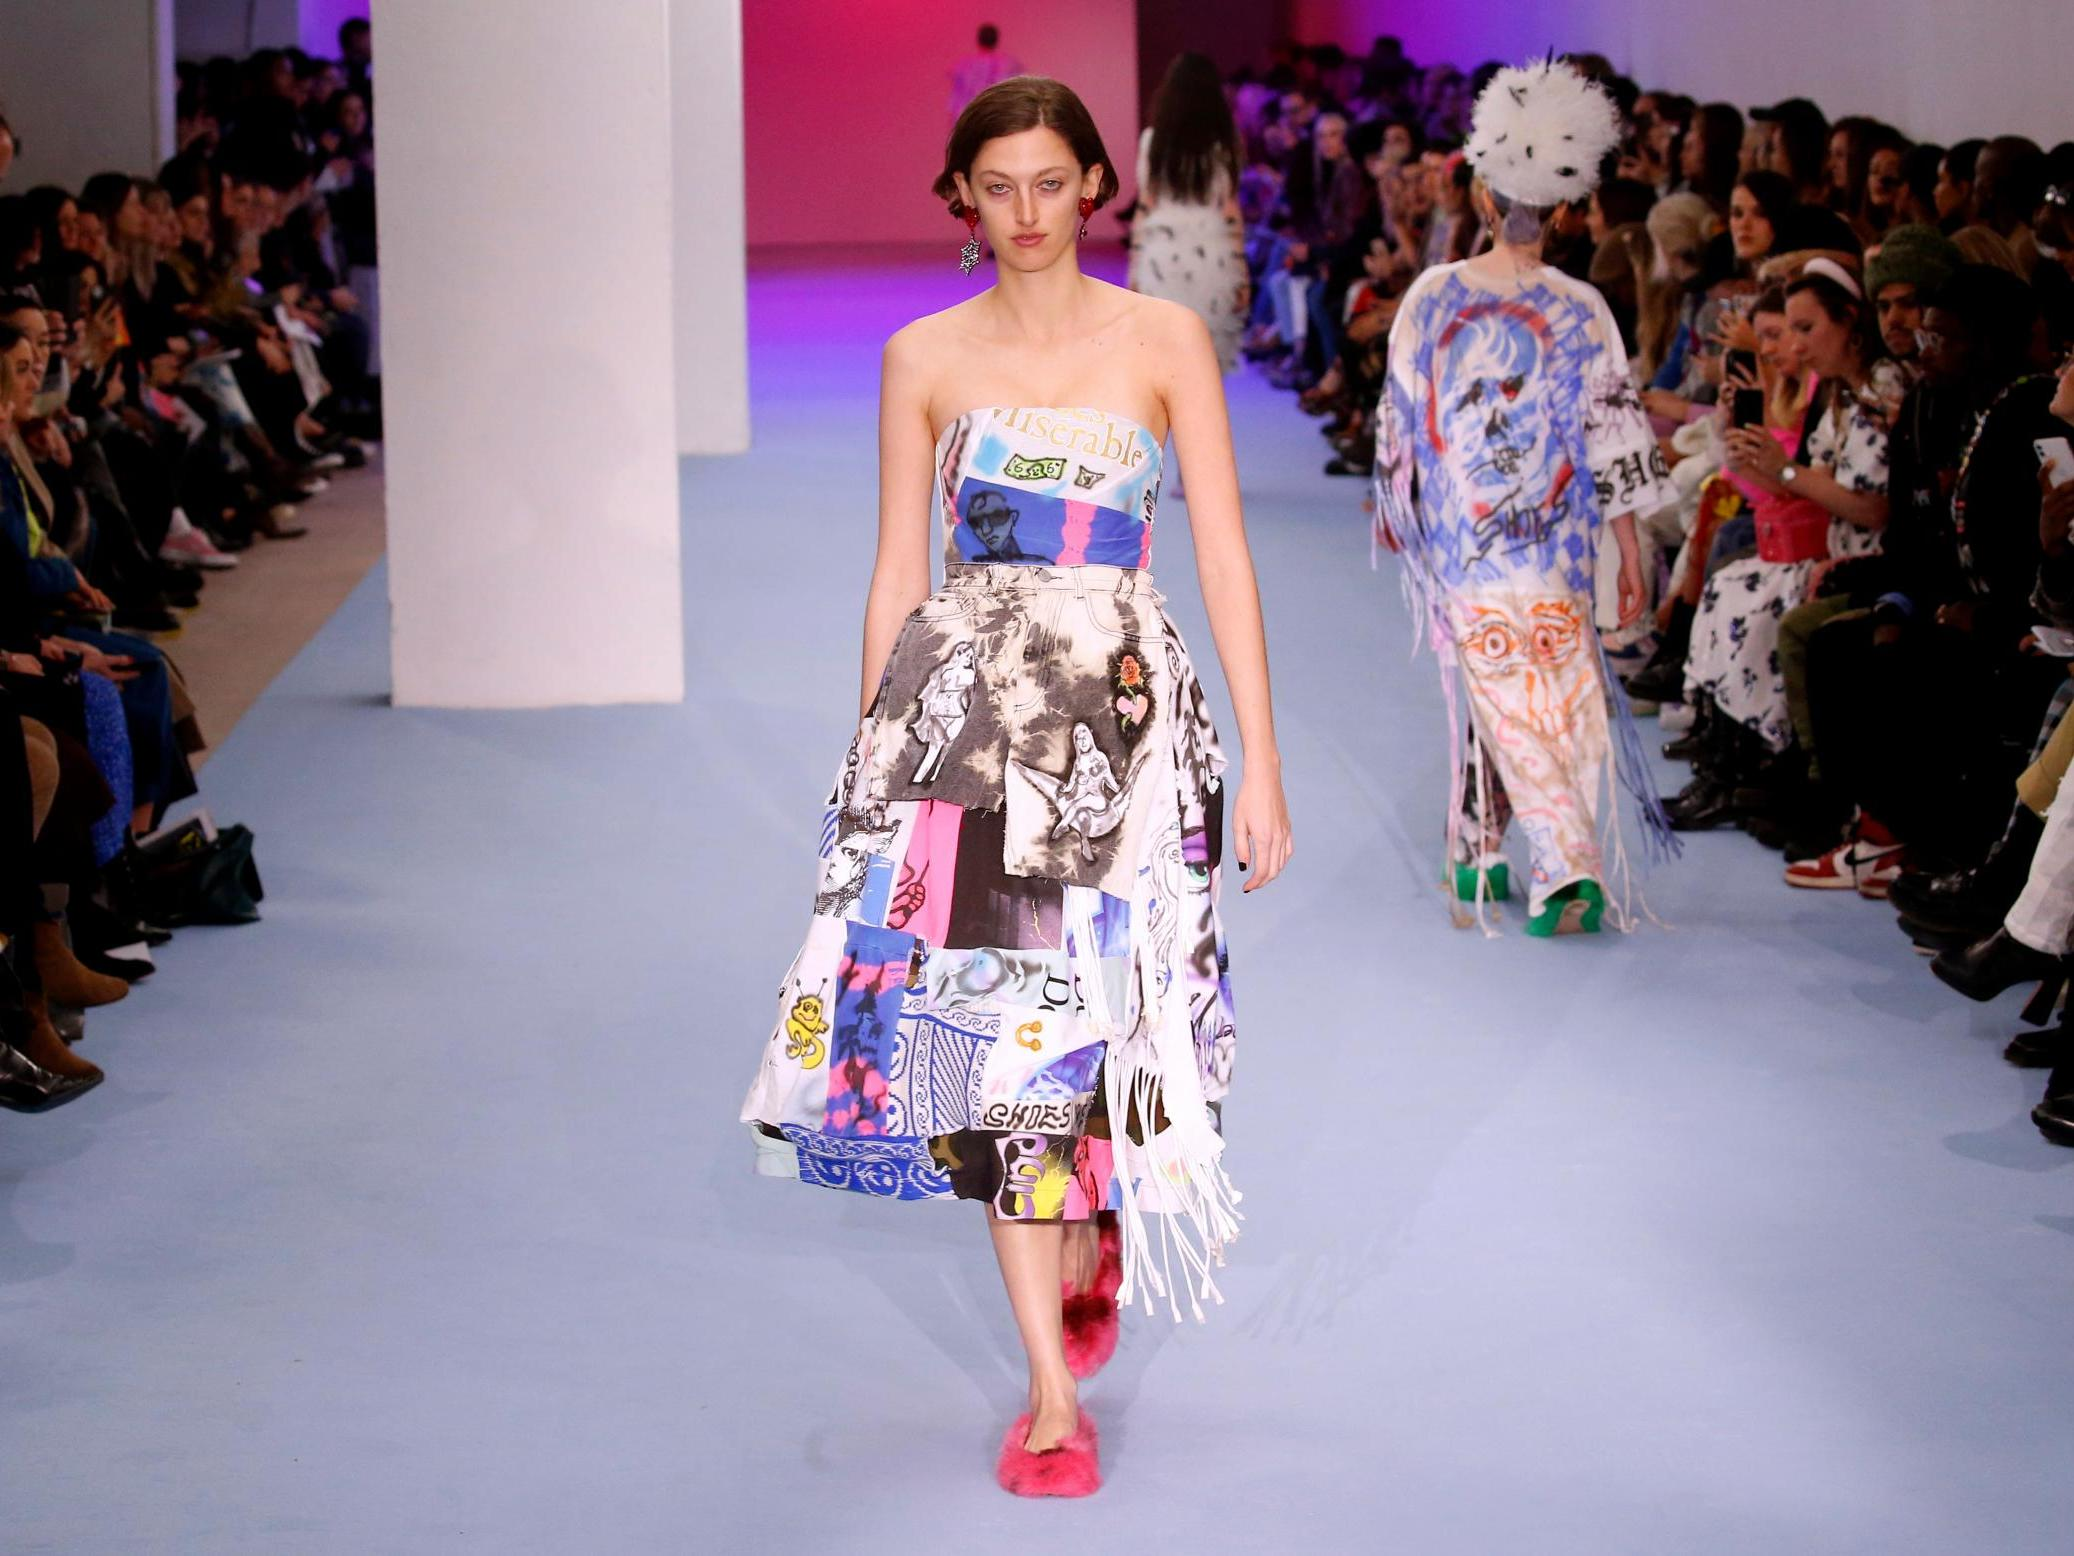 London Fashion Week: How did this season's event fare in terms of sustainability?